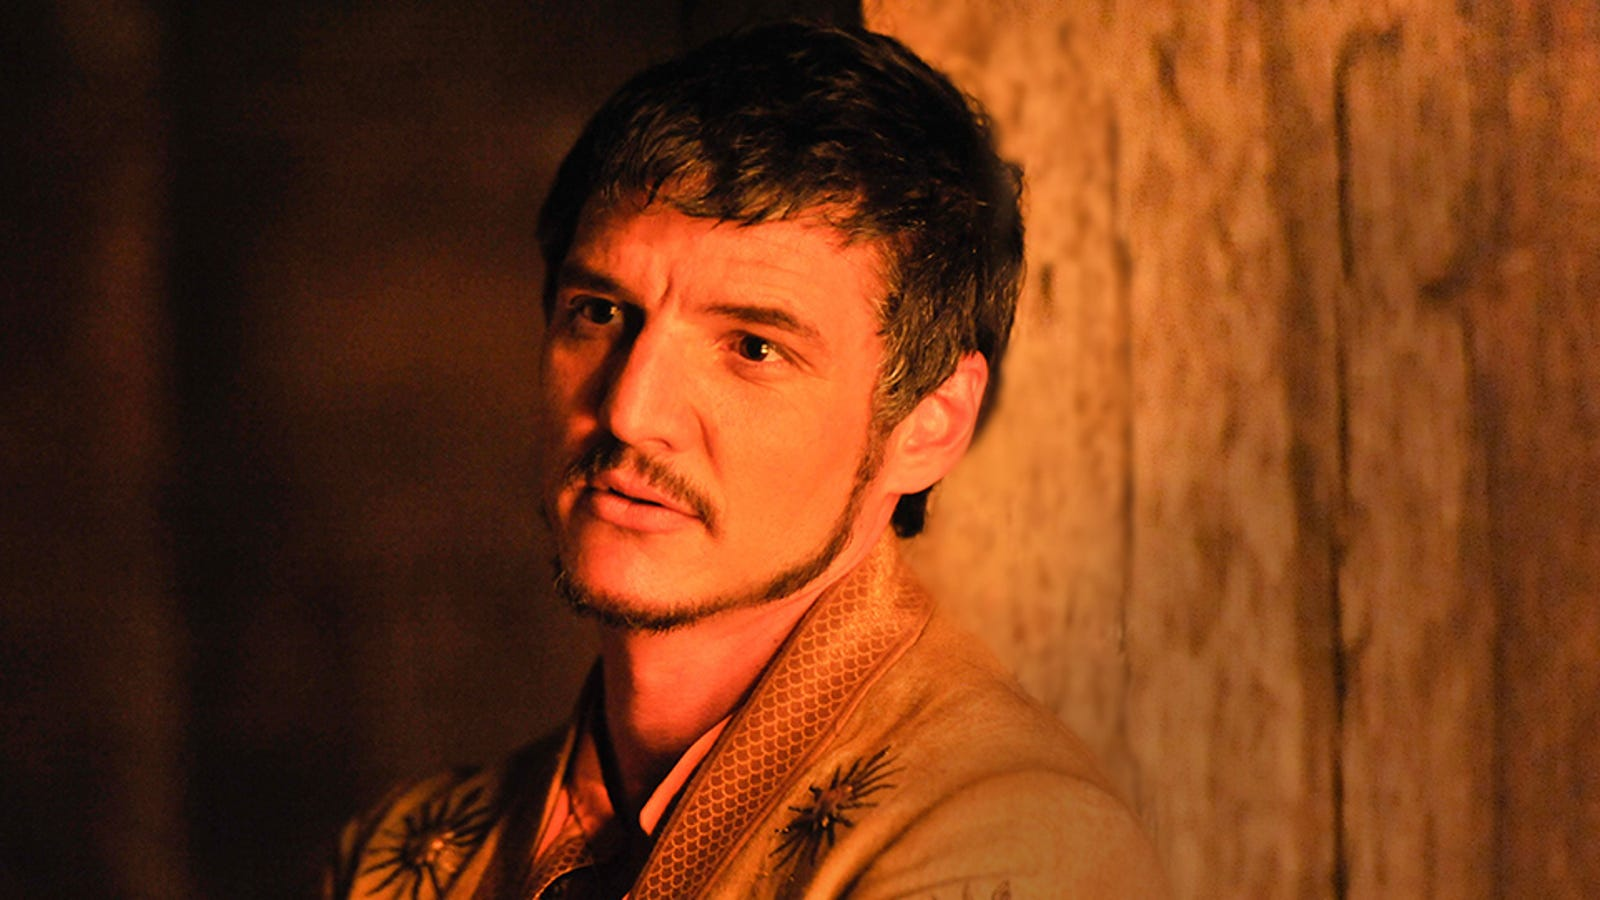 Game of thrones prince oberyn bisexual